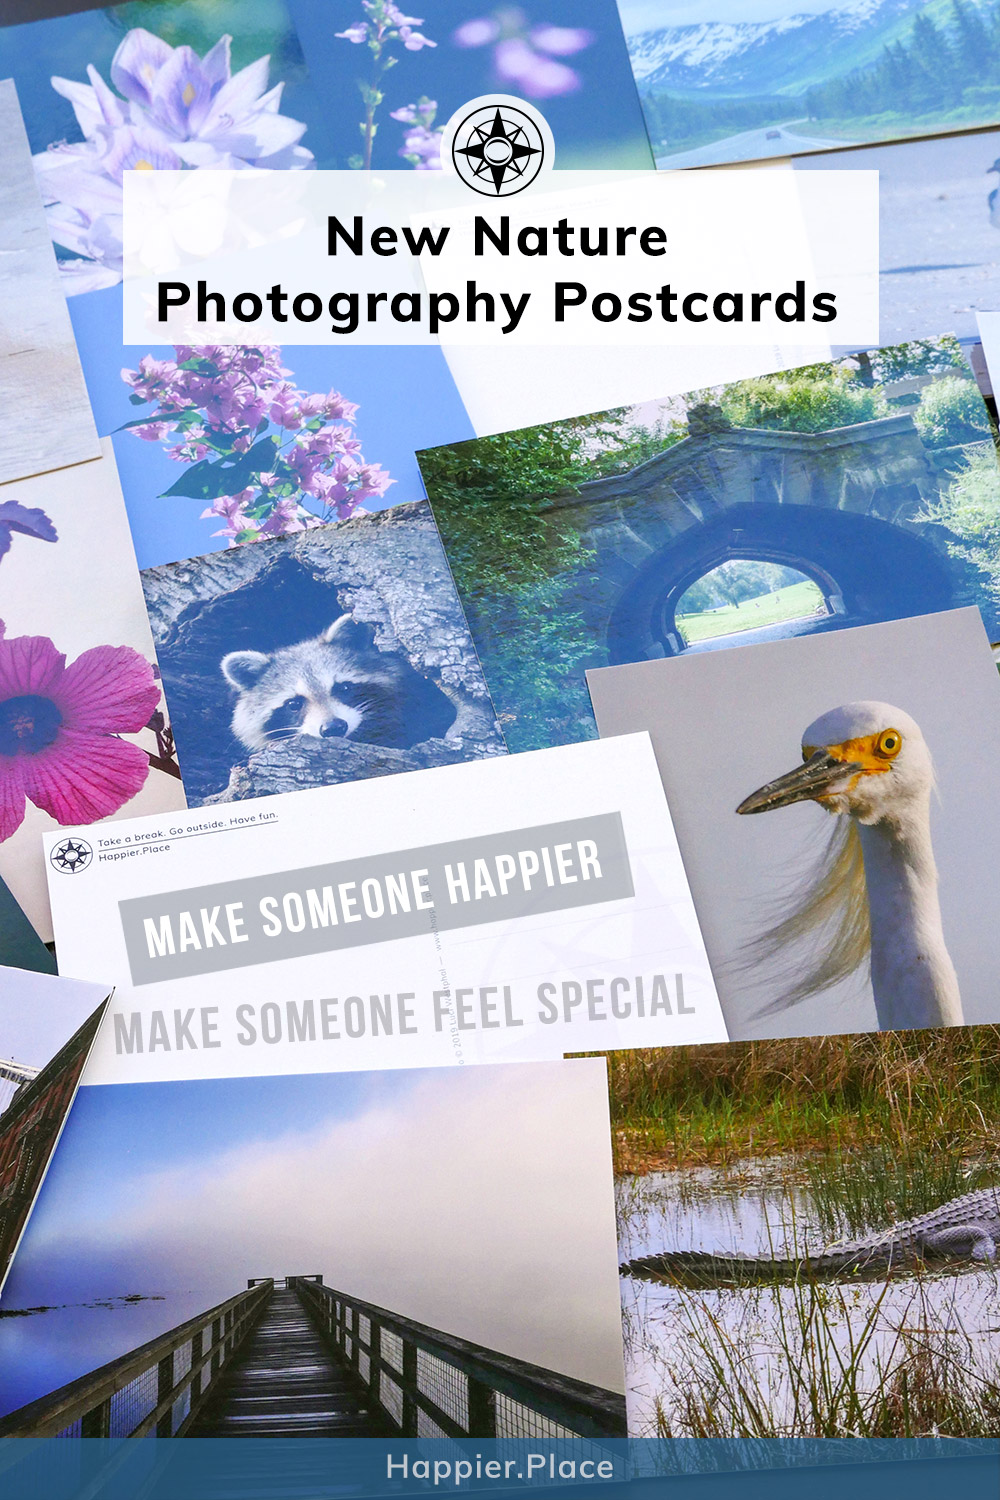 More Ways To Make Someone Happier: New Nature Photography Postcards